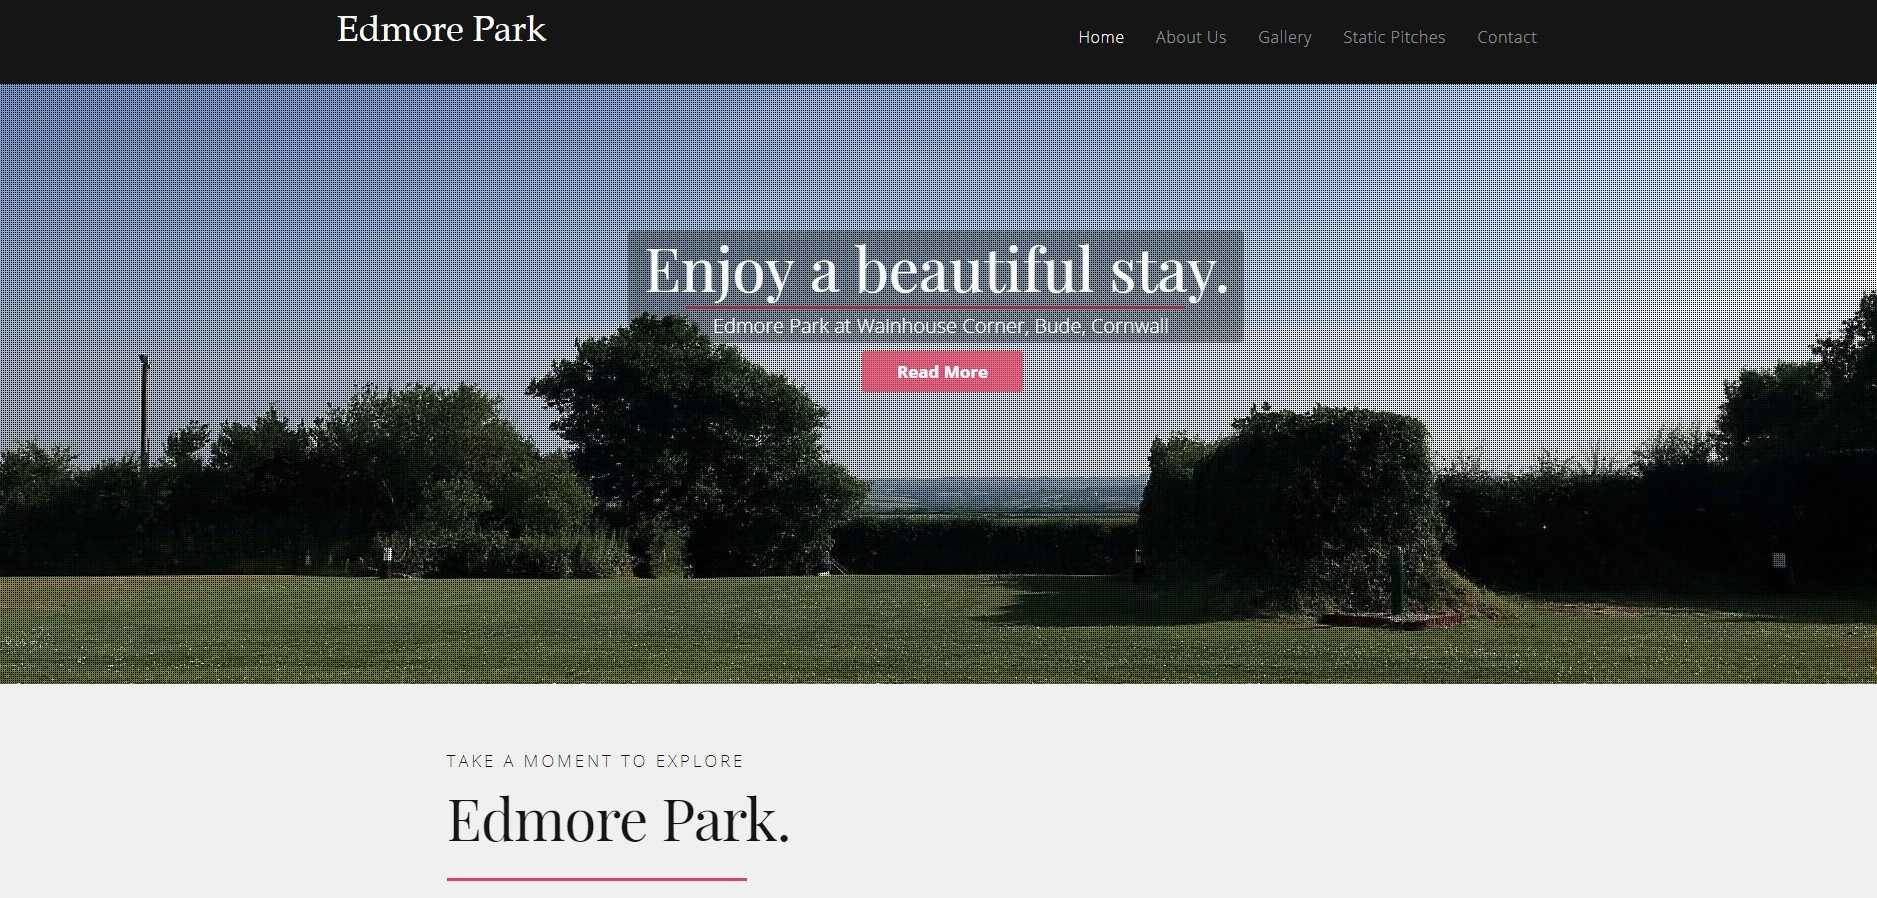 Edmore Park Campsite Website By T900 Website Design in Surrey